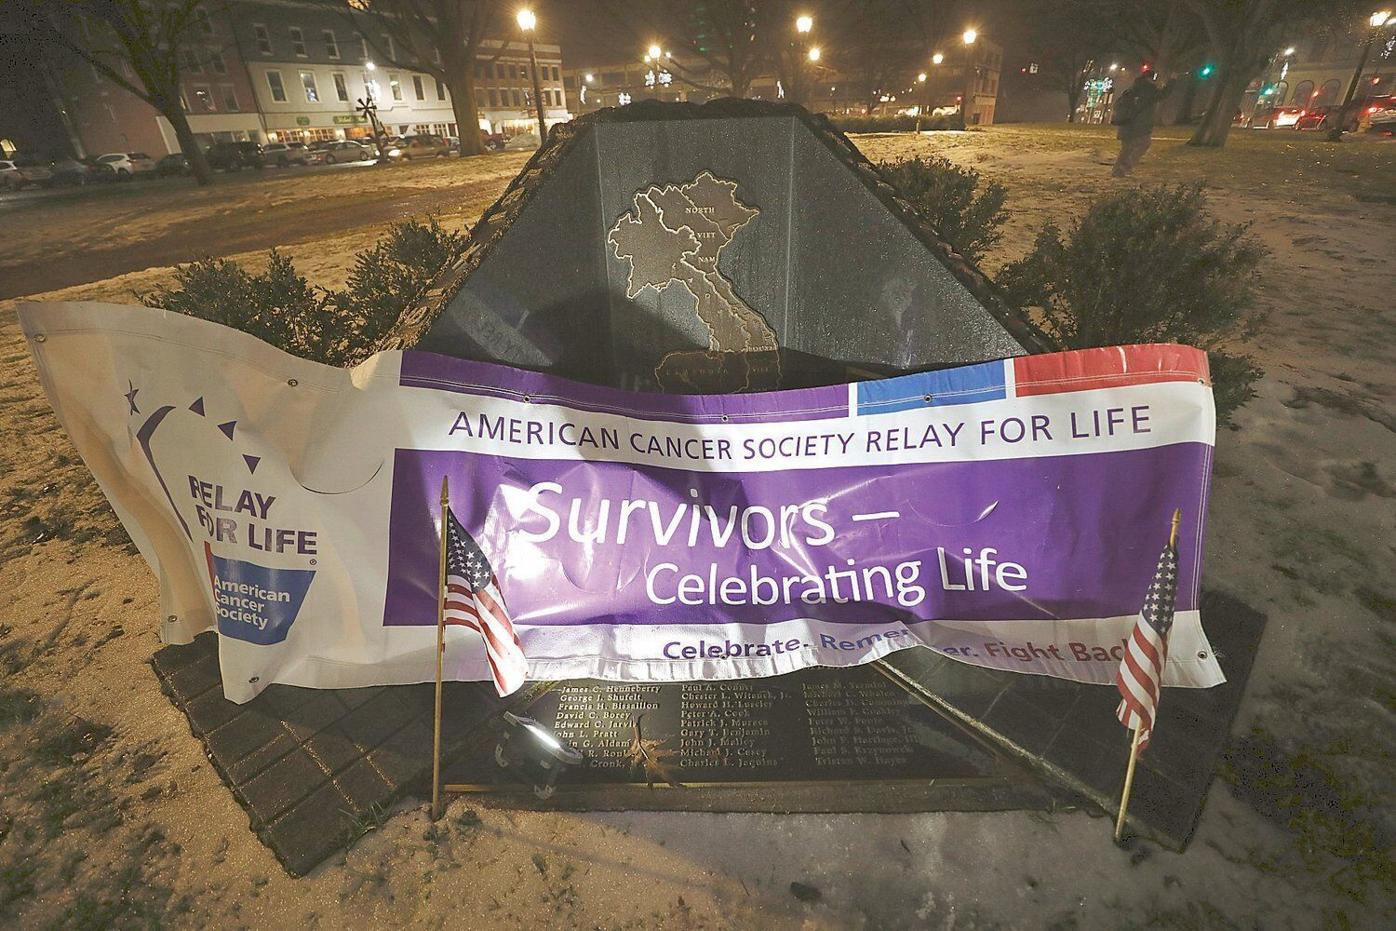 Relay for Life fundraiser returning to Pittsfield